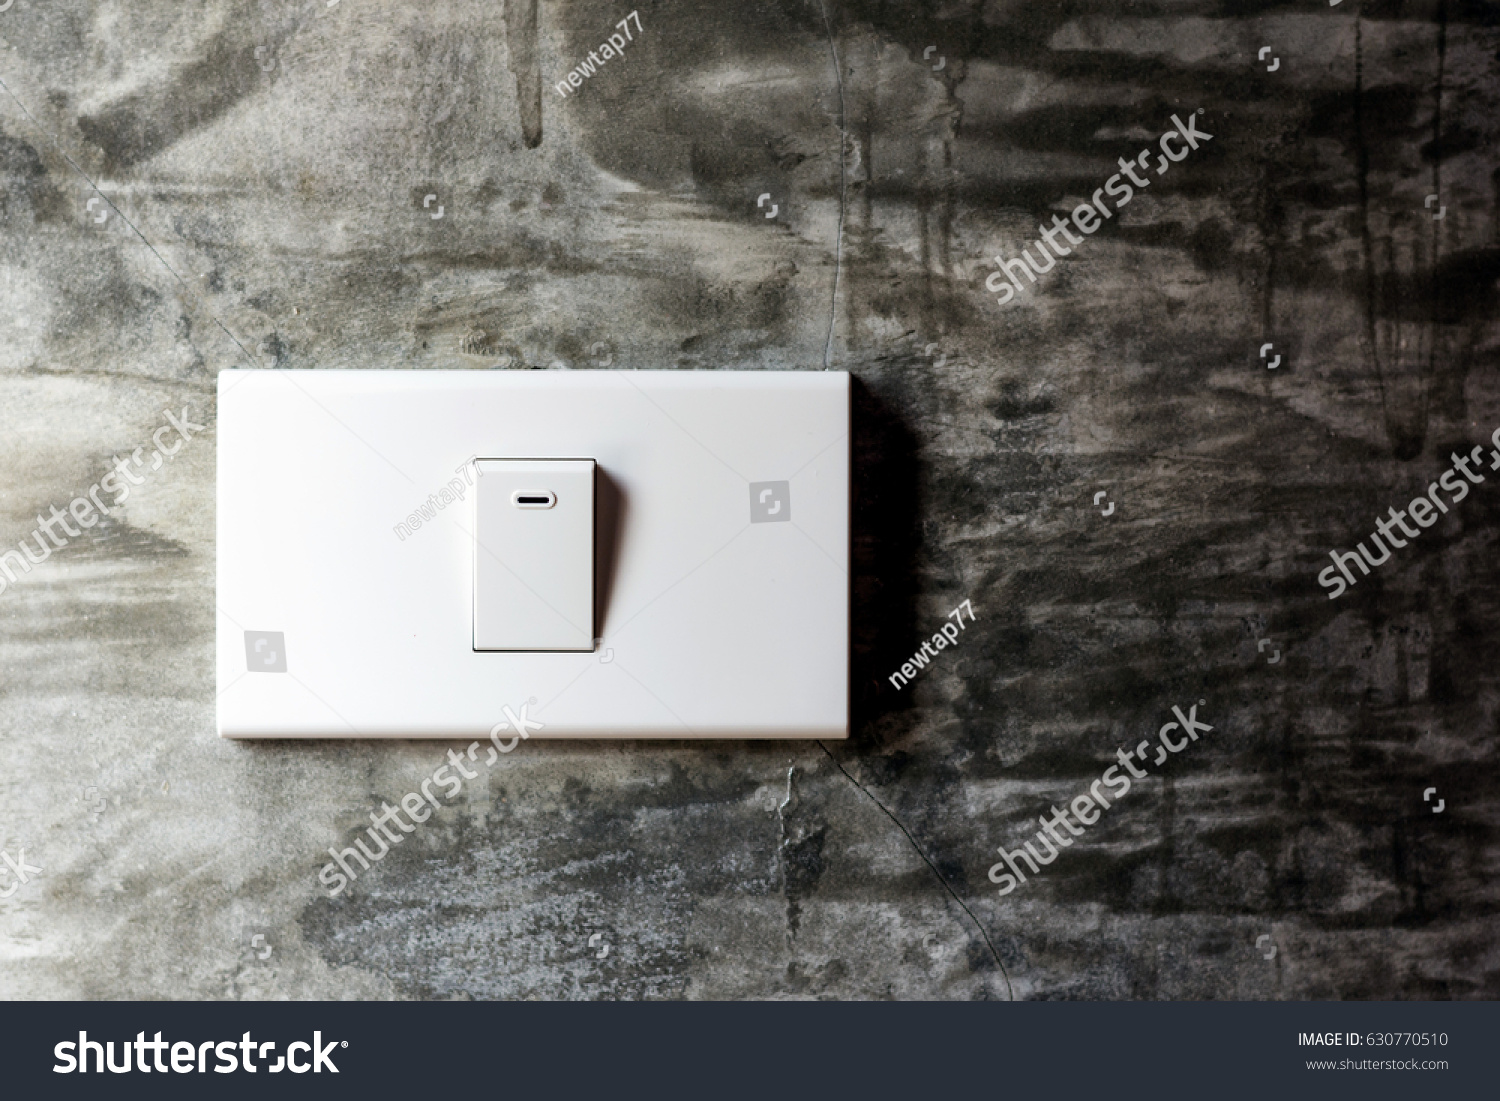 Lighting Switch On The Concrete Wall Without Painting